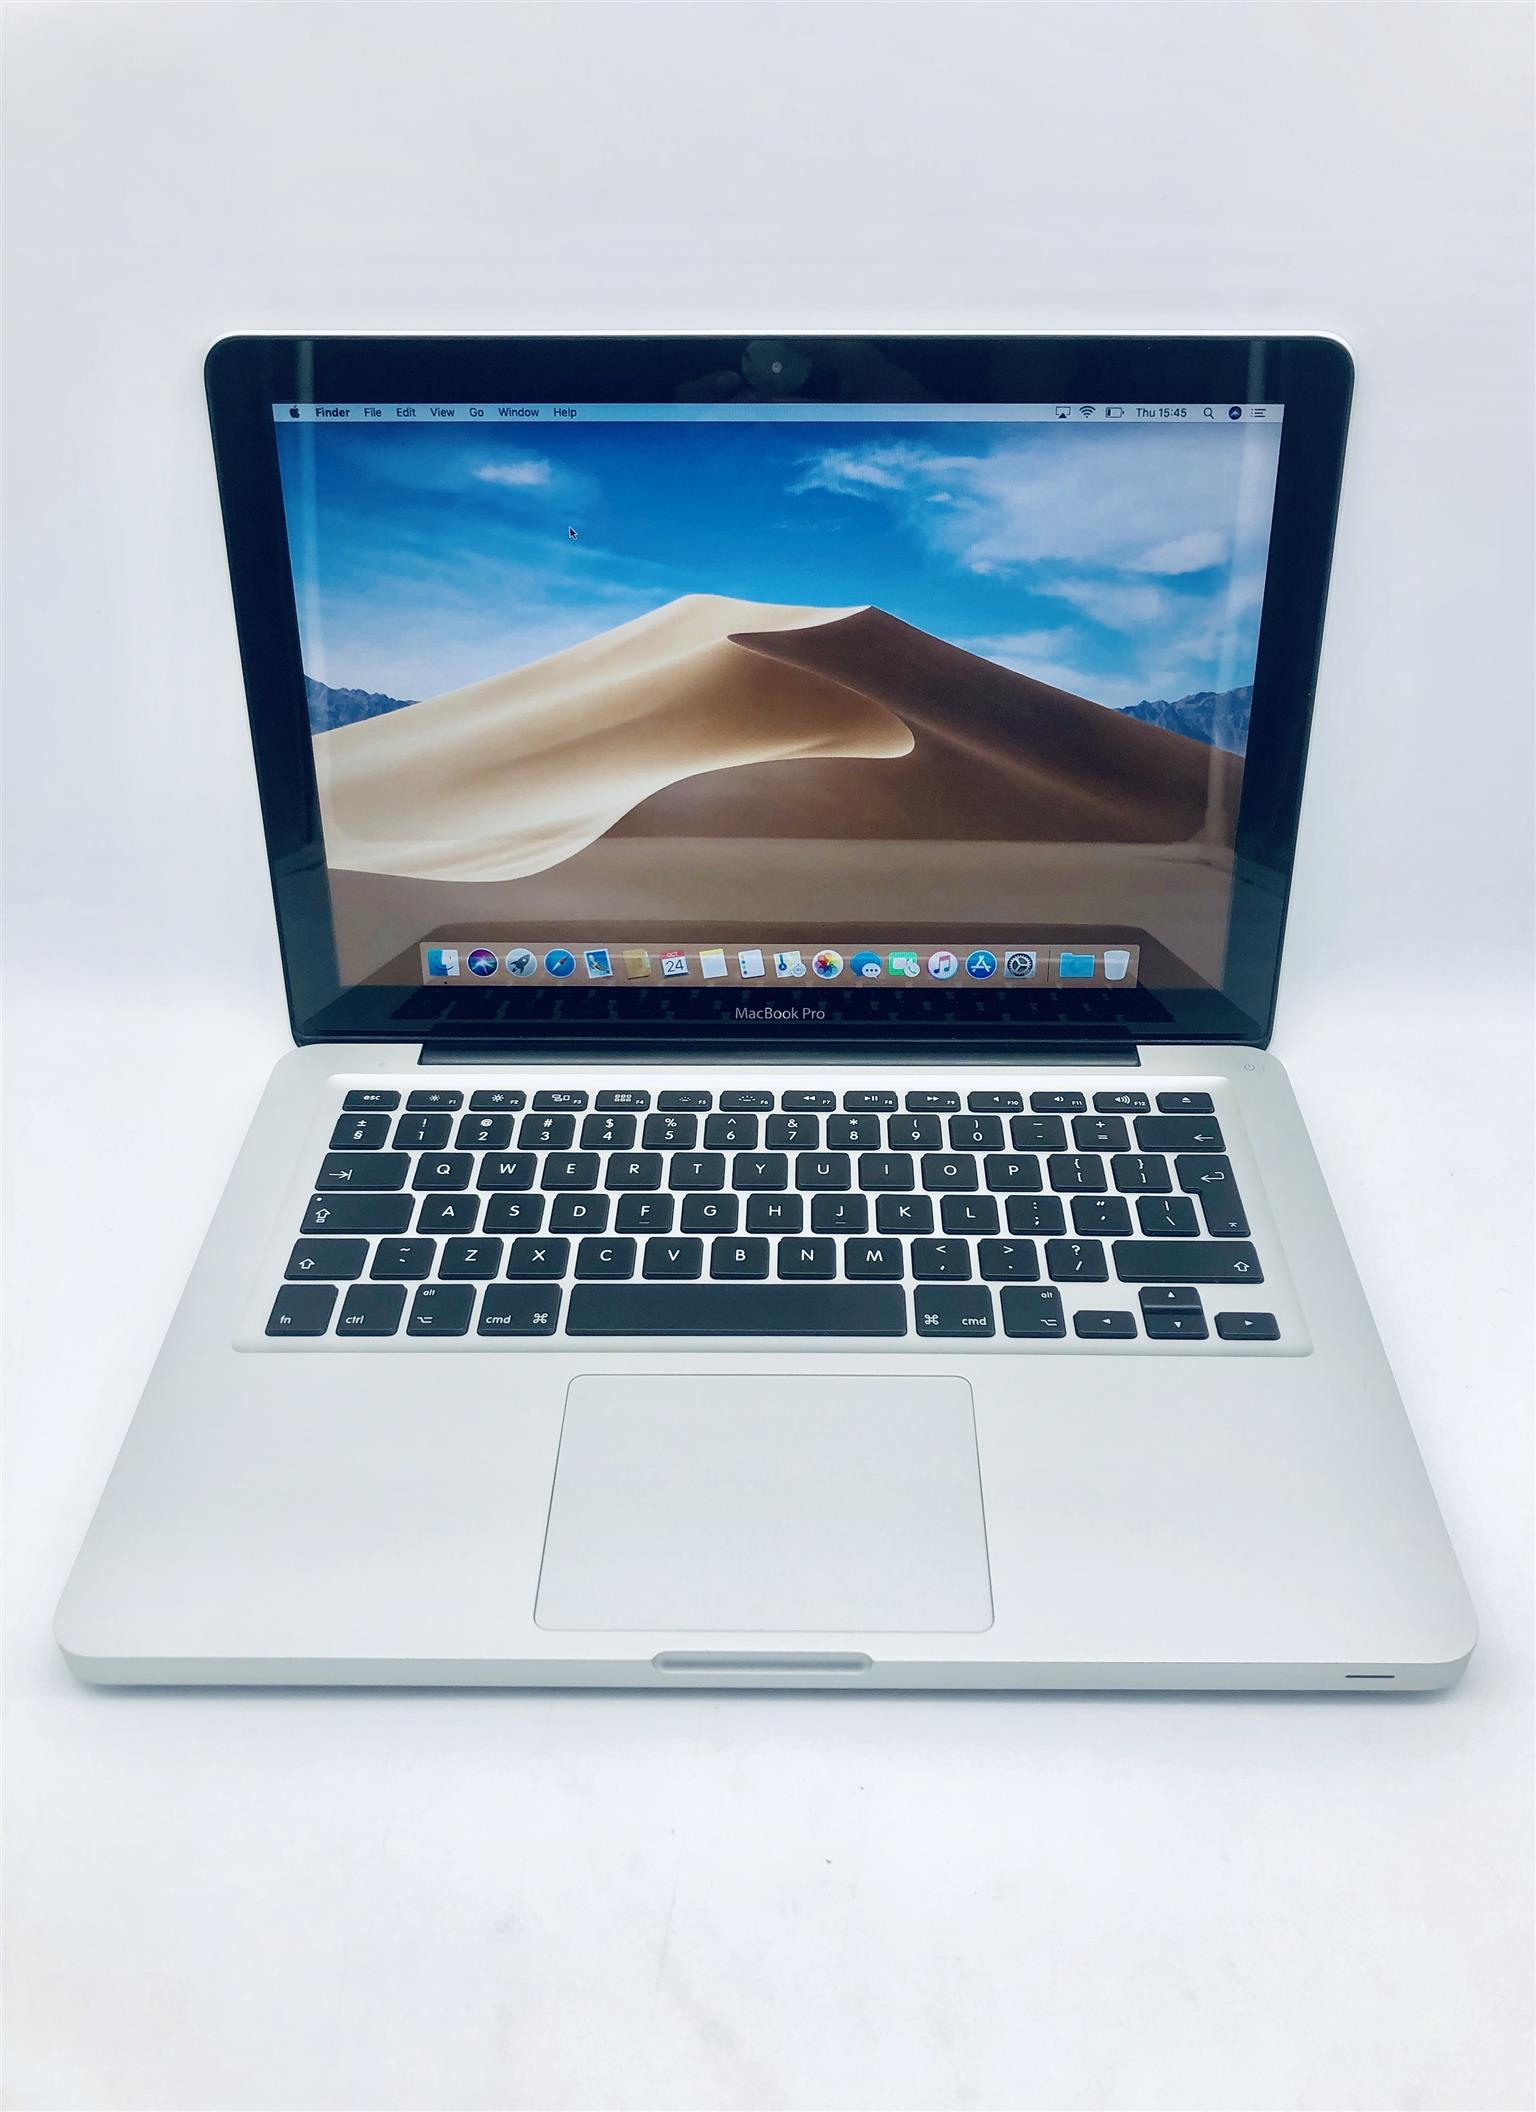 Apple MacBook Pro 13-inch 2.5GHz Dual-Core i5 (8GB RAM, 2TB SSD, Silver) - Pre Owned